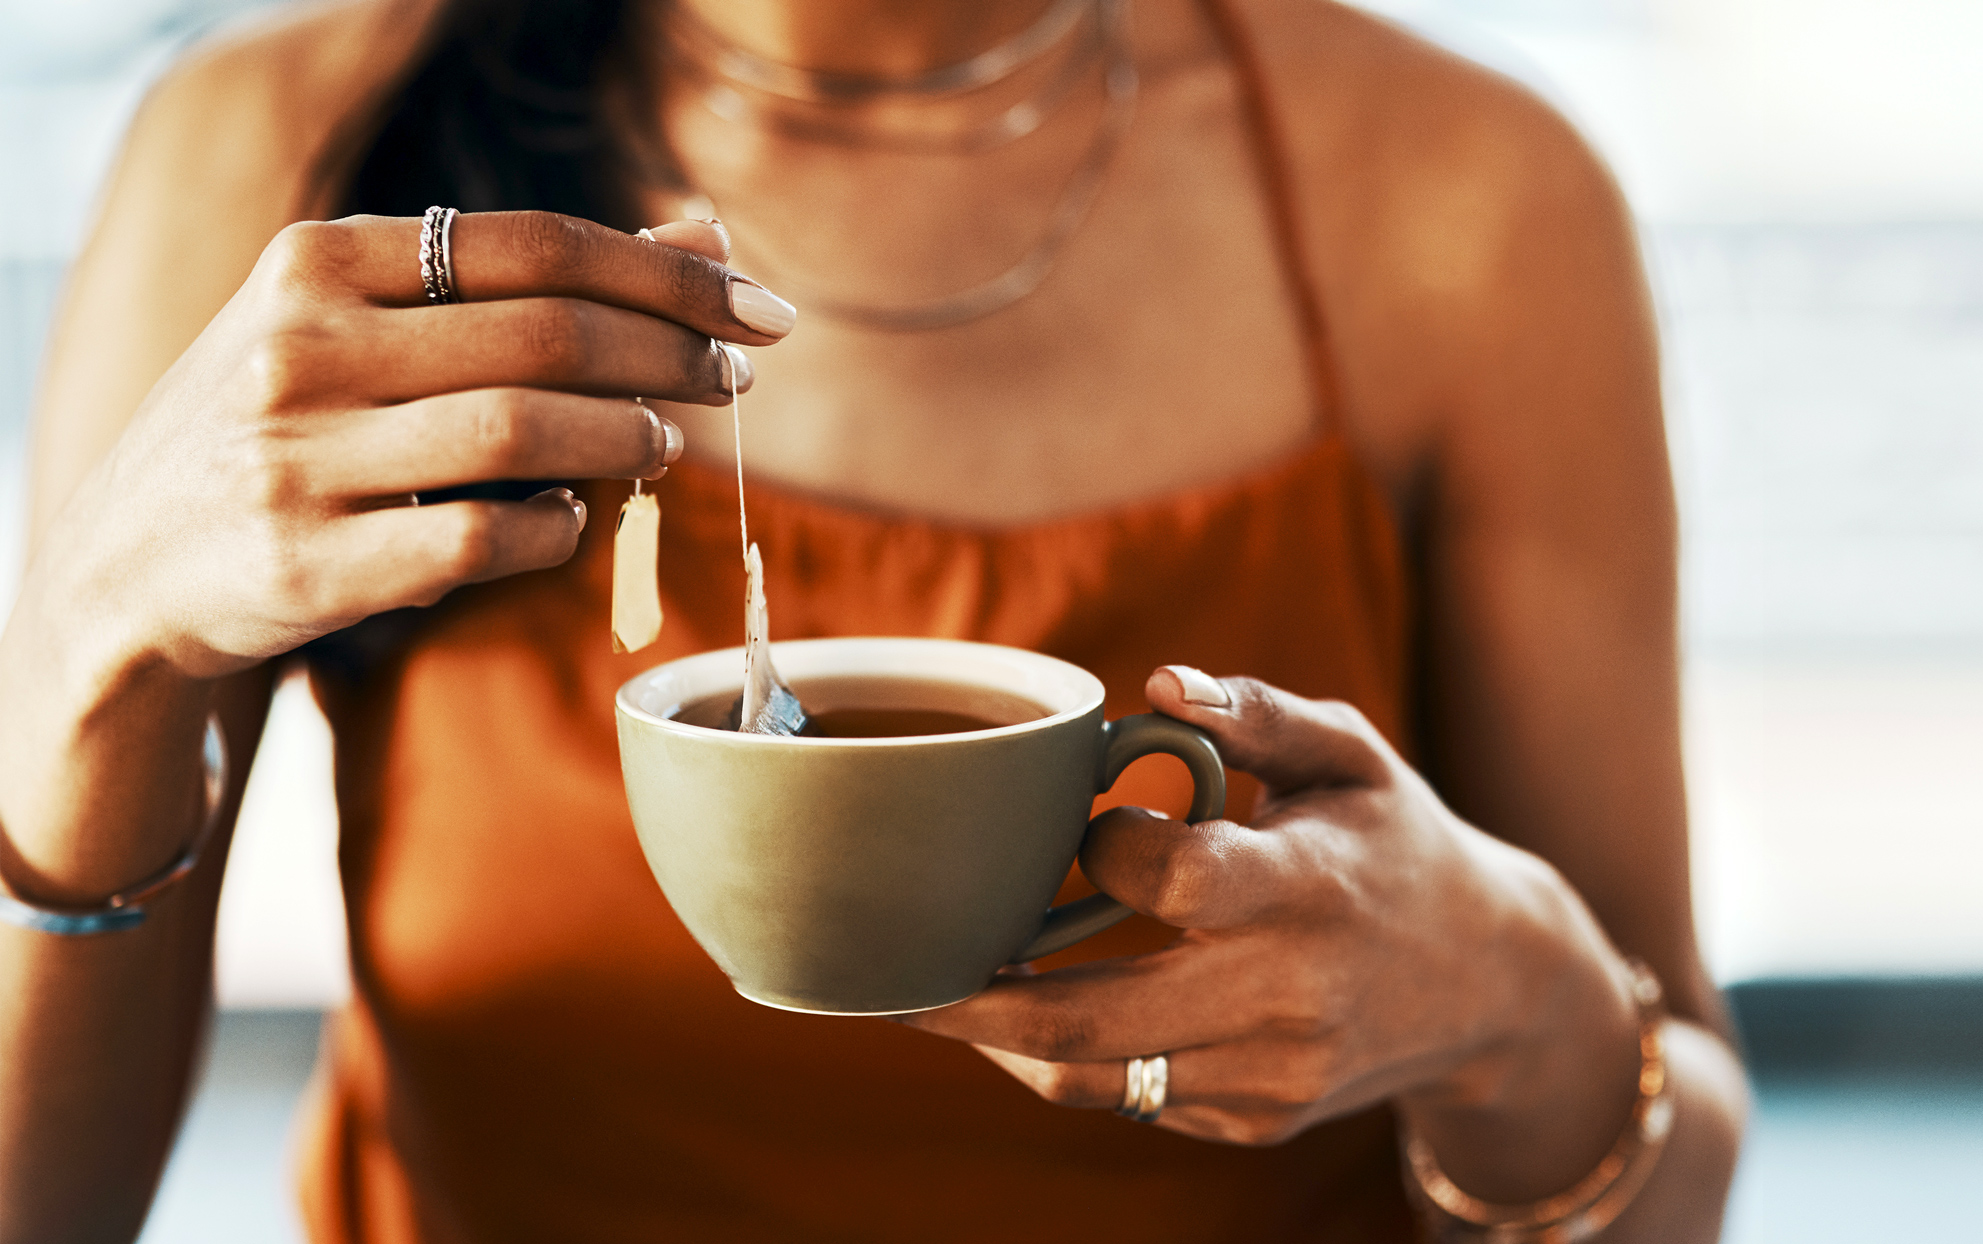 woman holding a cup of tea and a tea bag